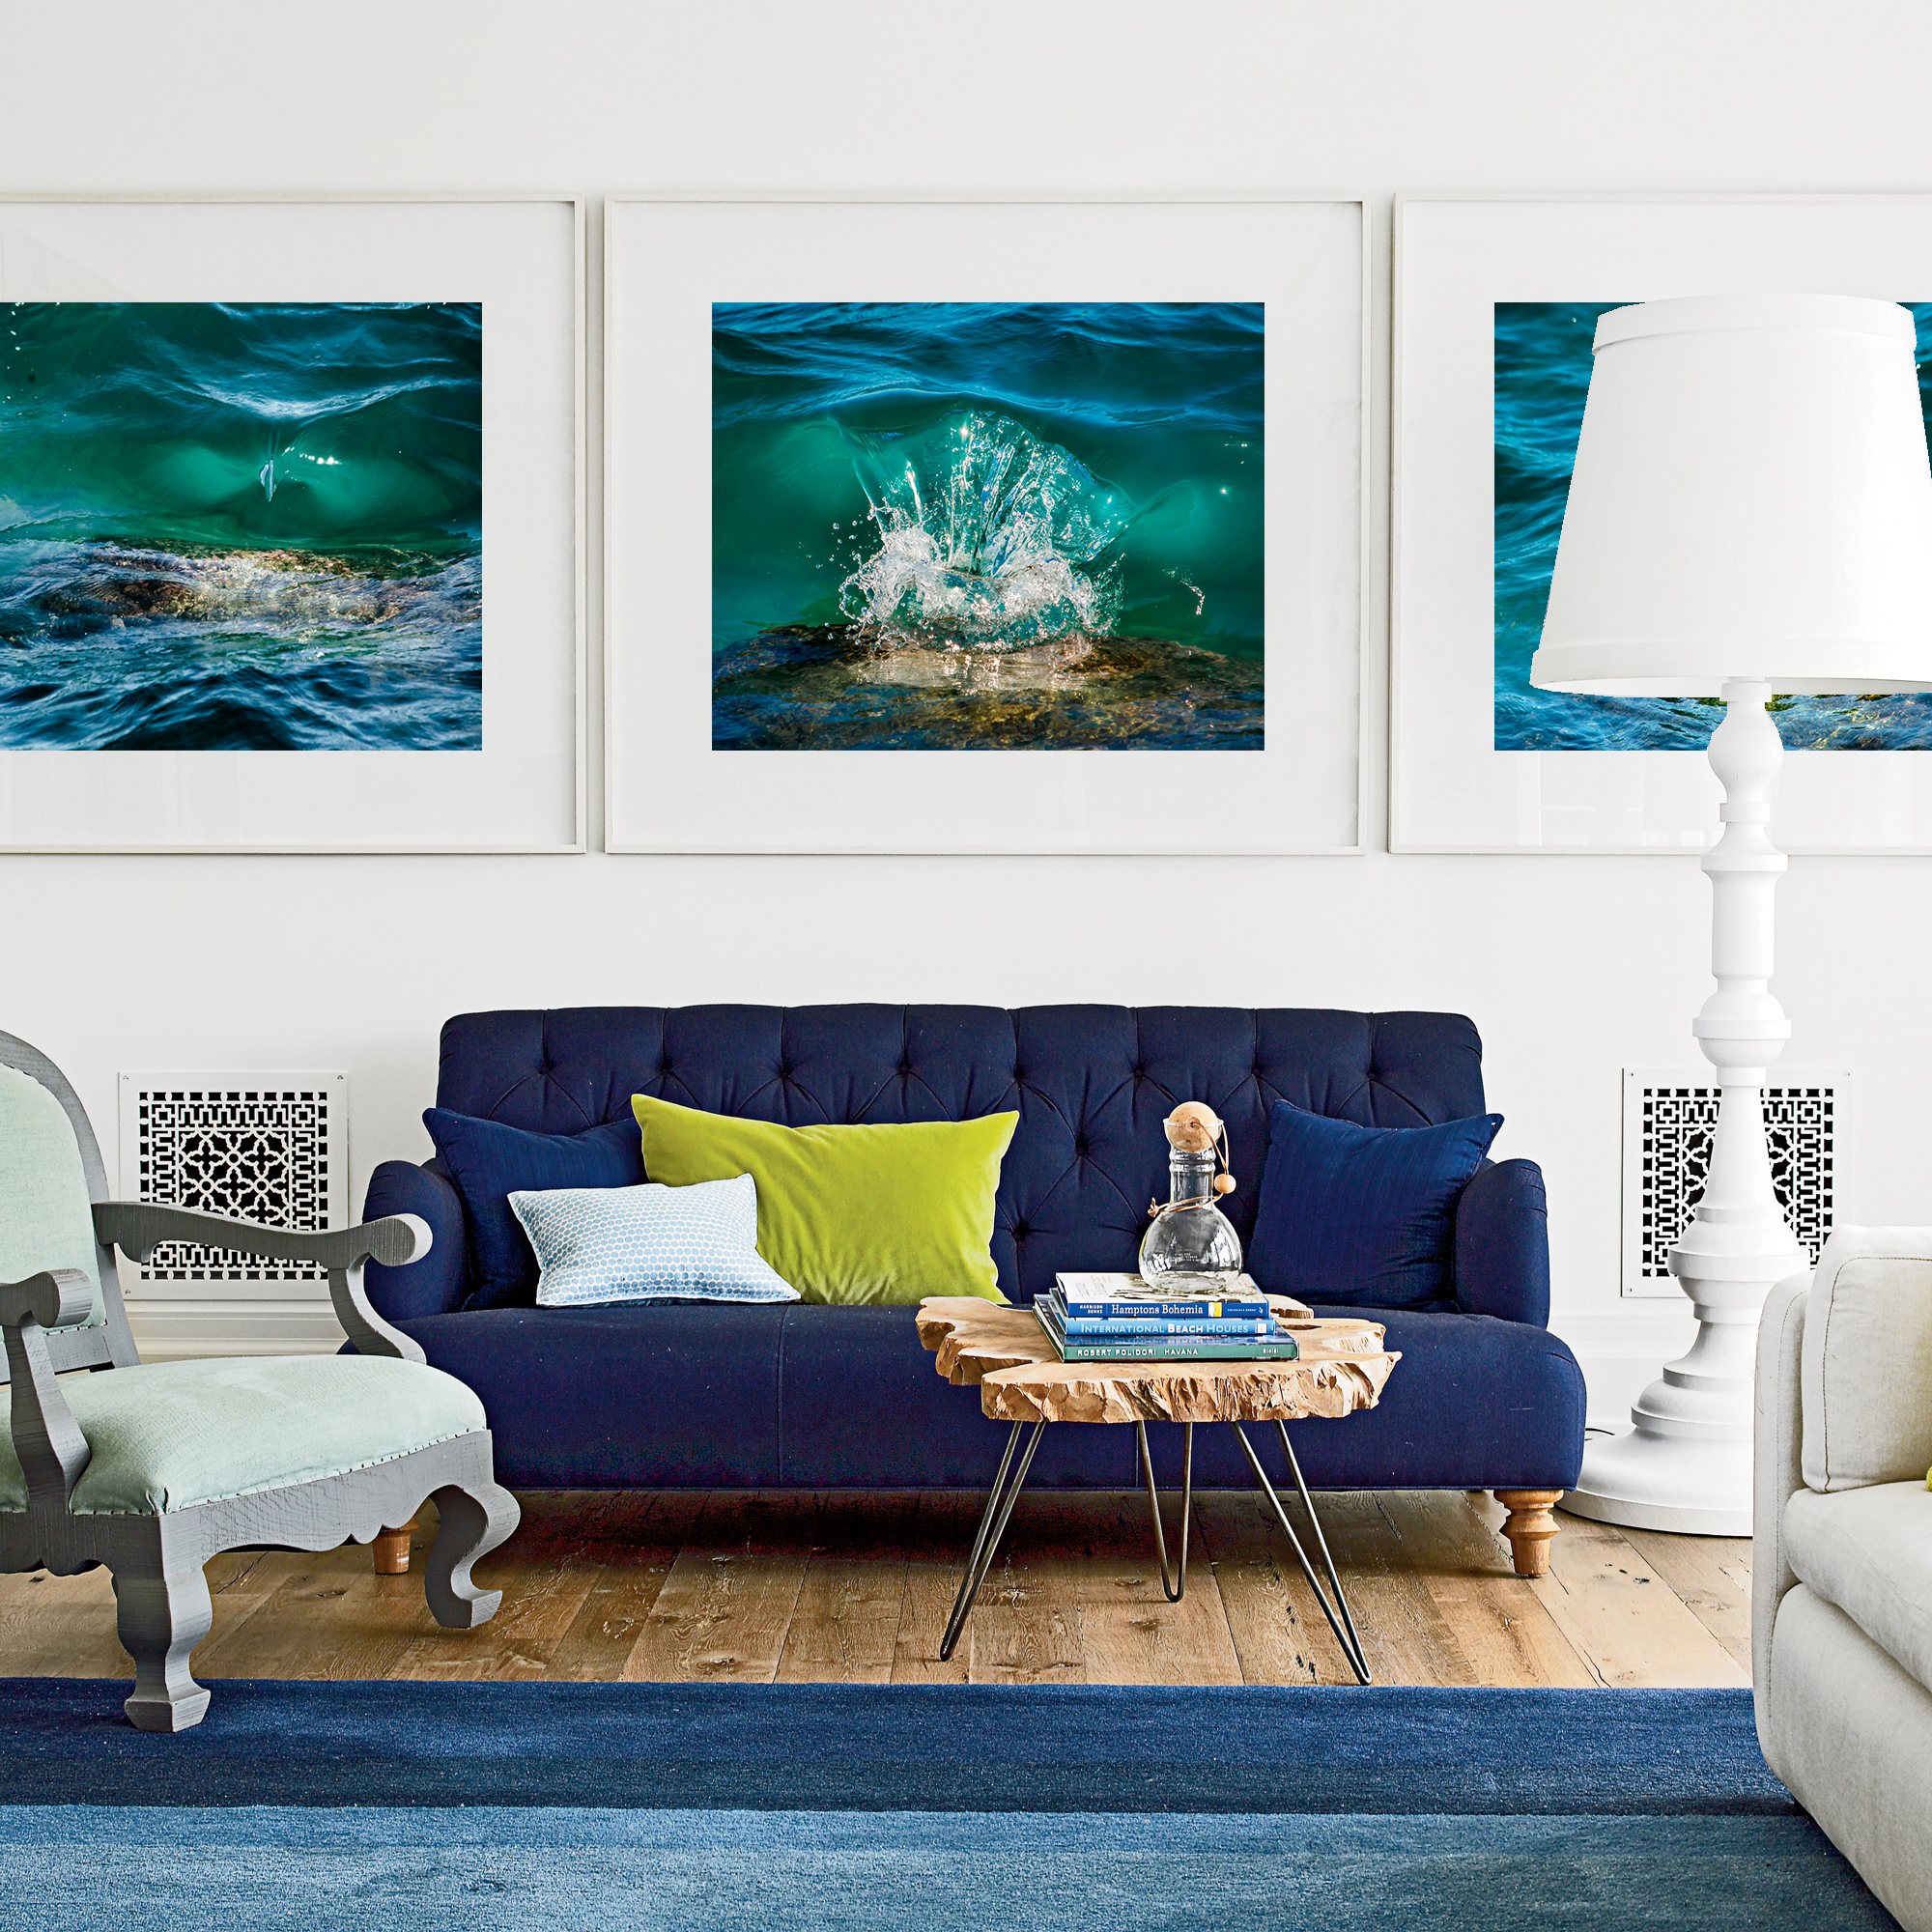 blue-chartreuse-living-room-ford_0412_8 copy.jpg